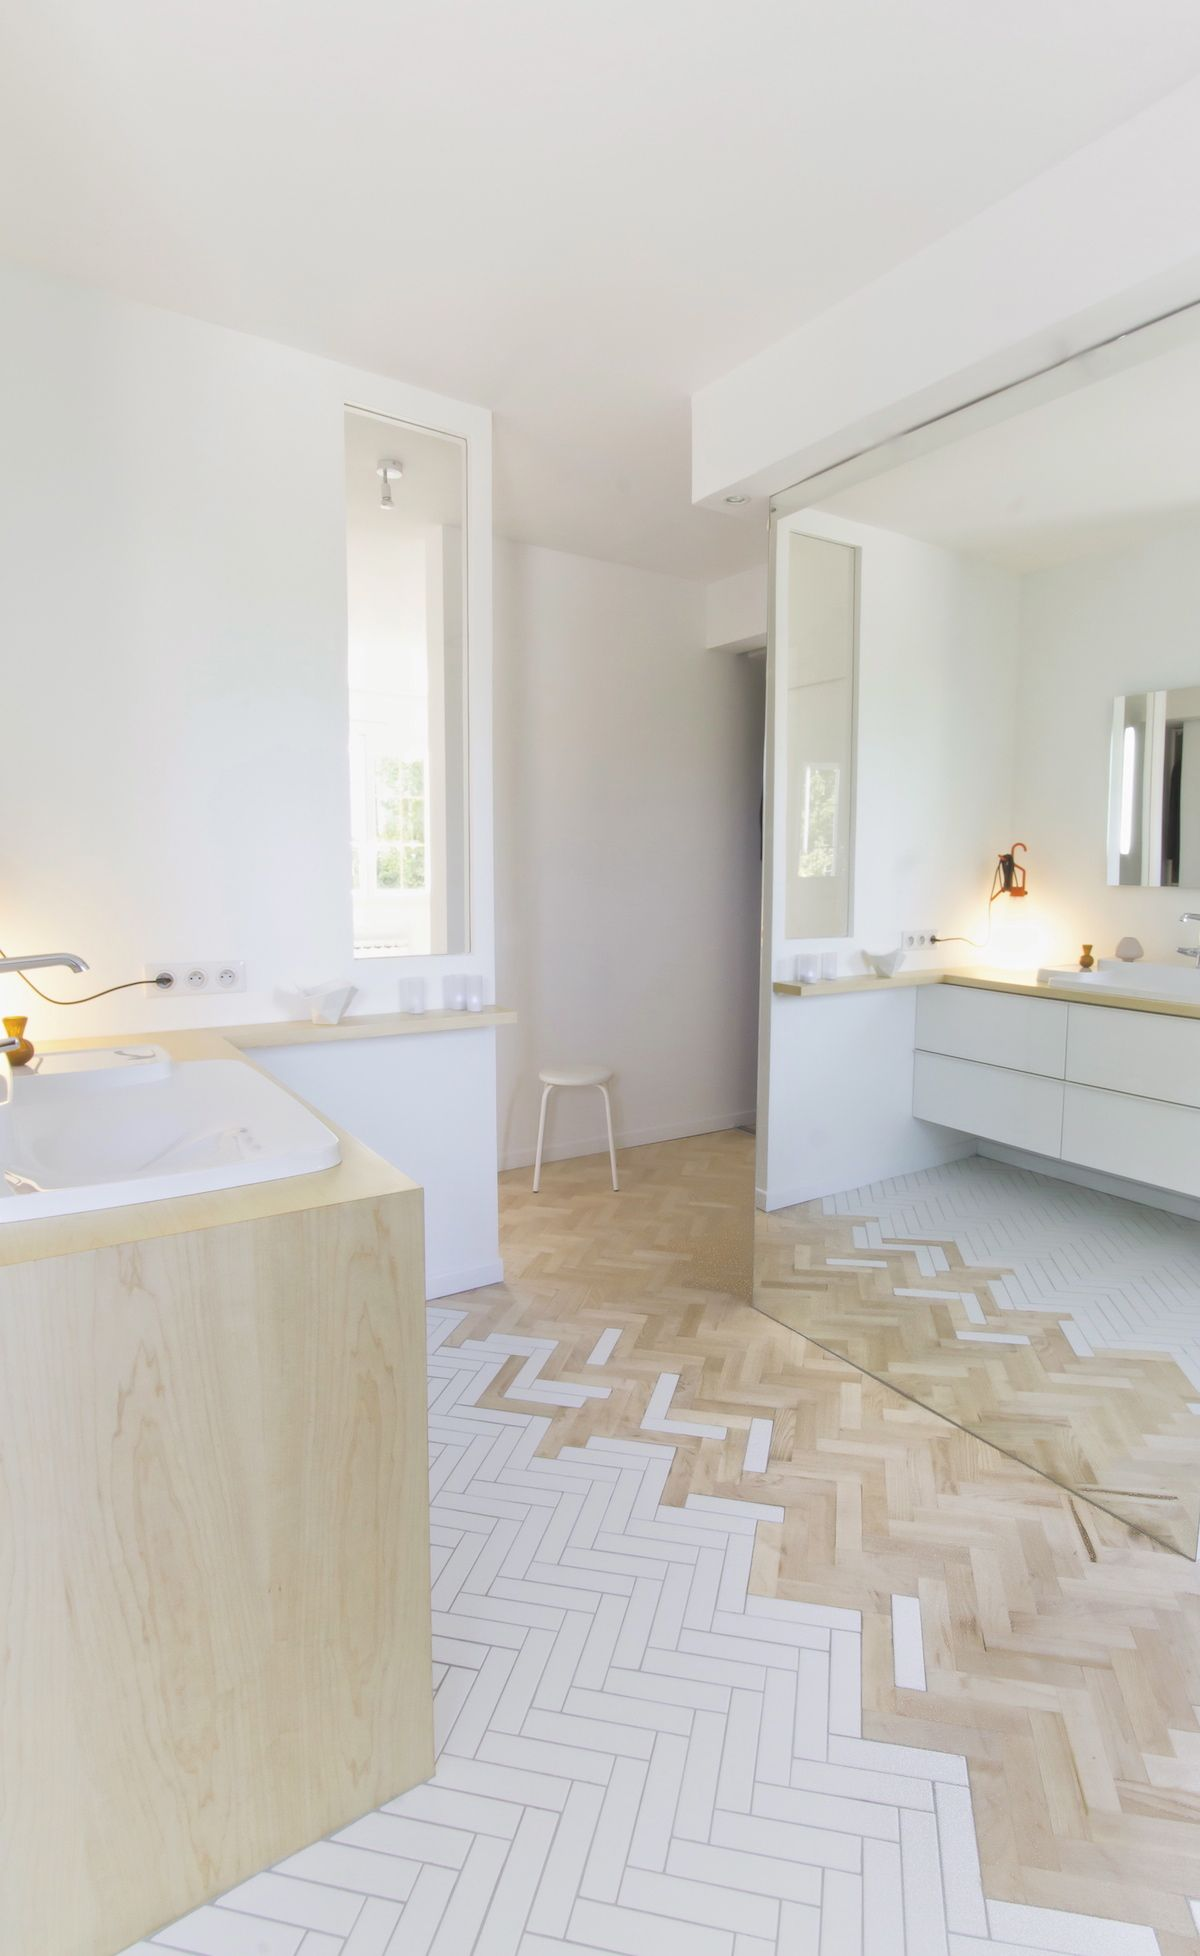 Kalb Lempereur : Interiors. Floor. Tiles. Wood. White. Brown ...